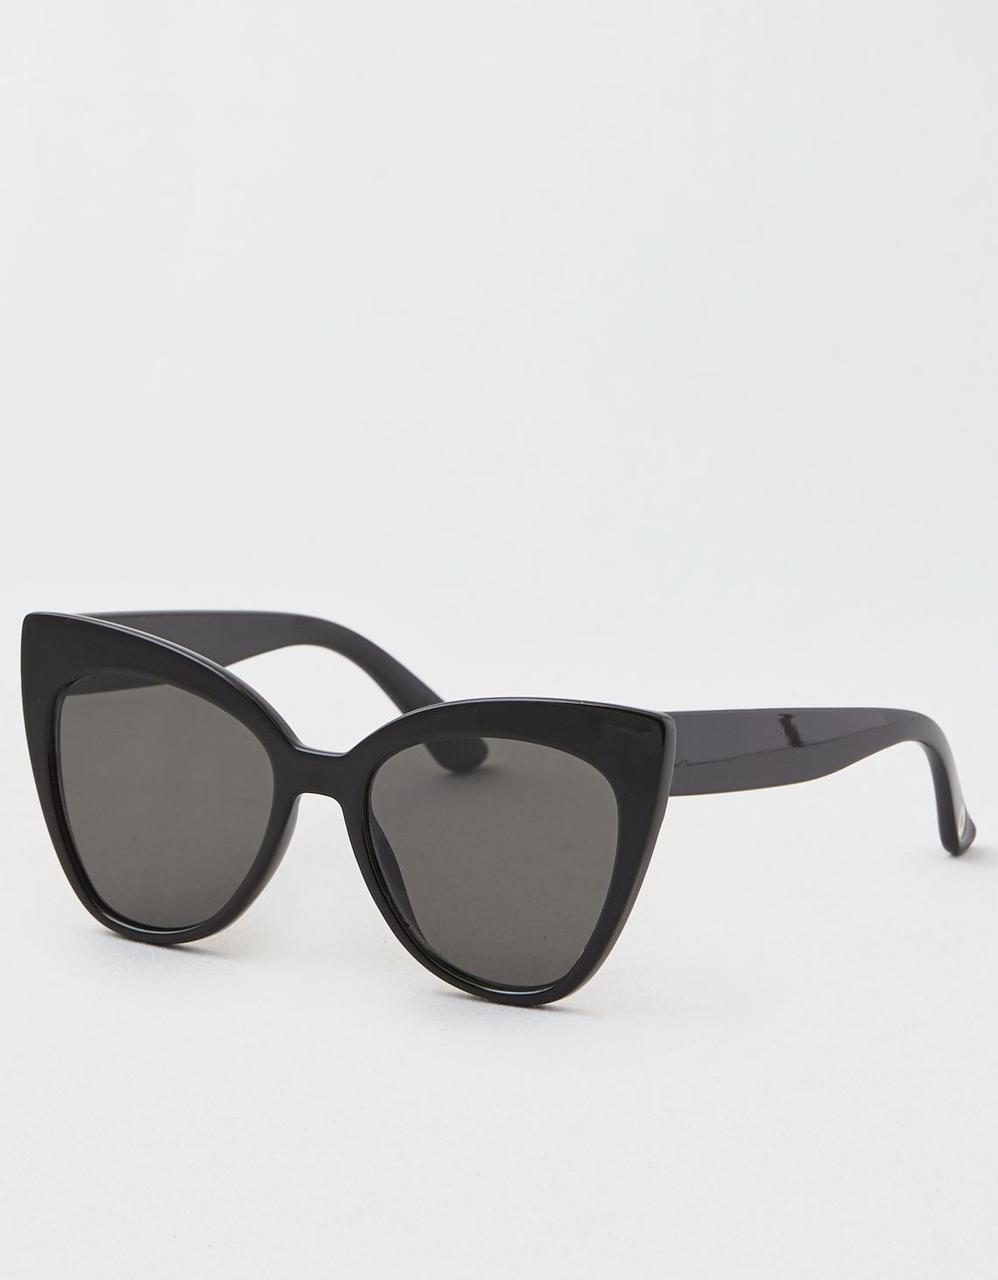 7610ca3b1 BLACK OVERSIZED CAT EYE SUNGLASSES